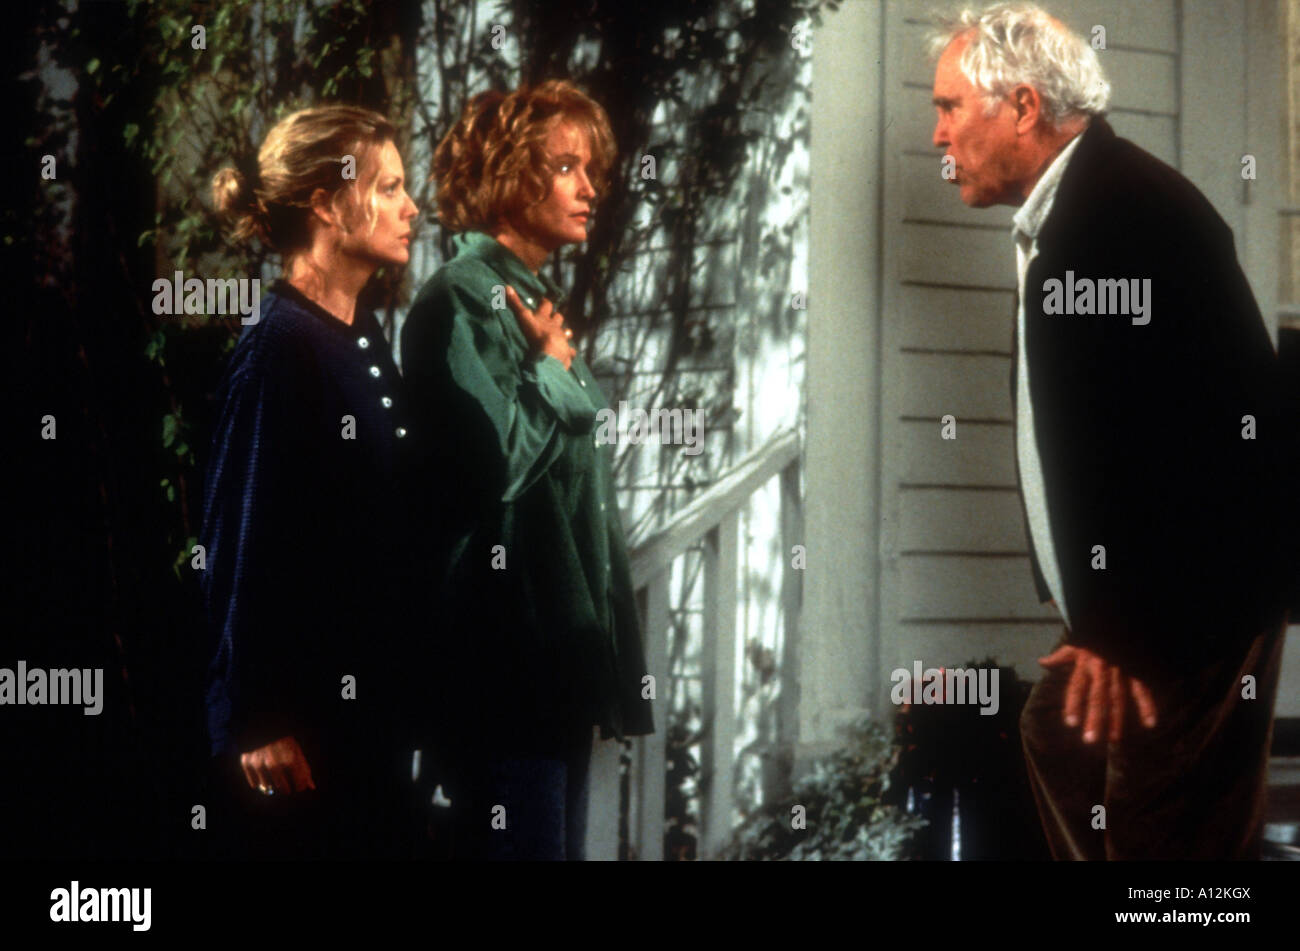 A Thousand Acres Year 1997 Director Jocelyn Moorhouse Michelle Pfeiffer Jessica Lange Jason Robards Based Upon